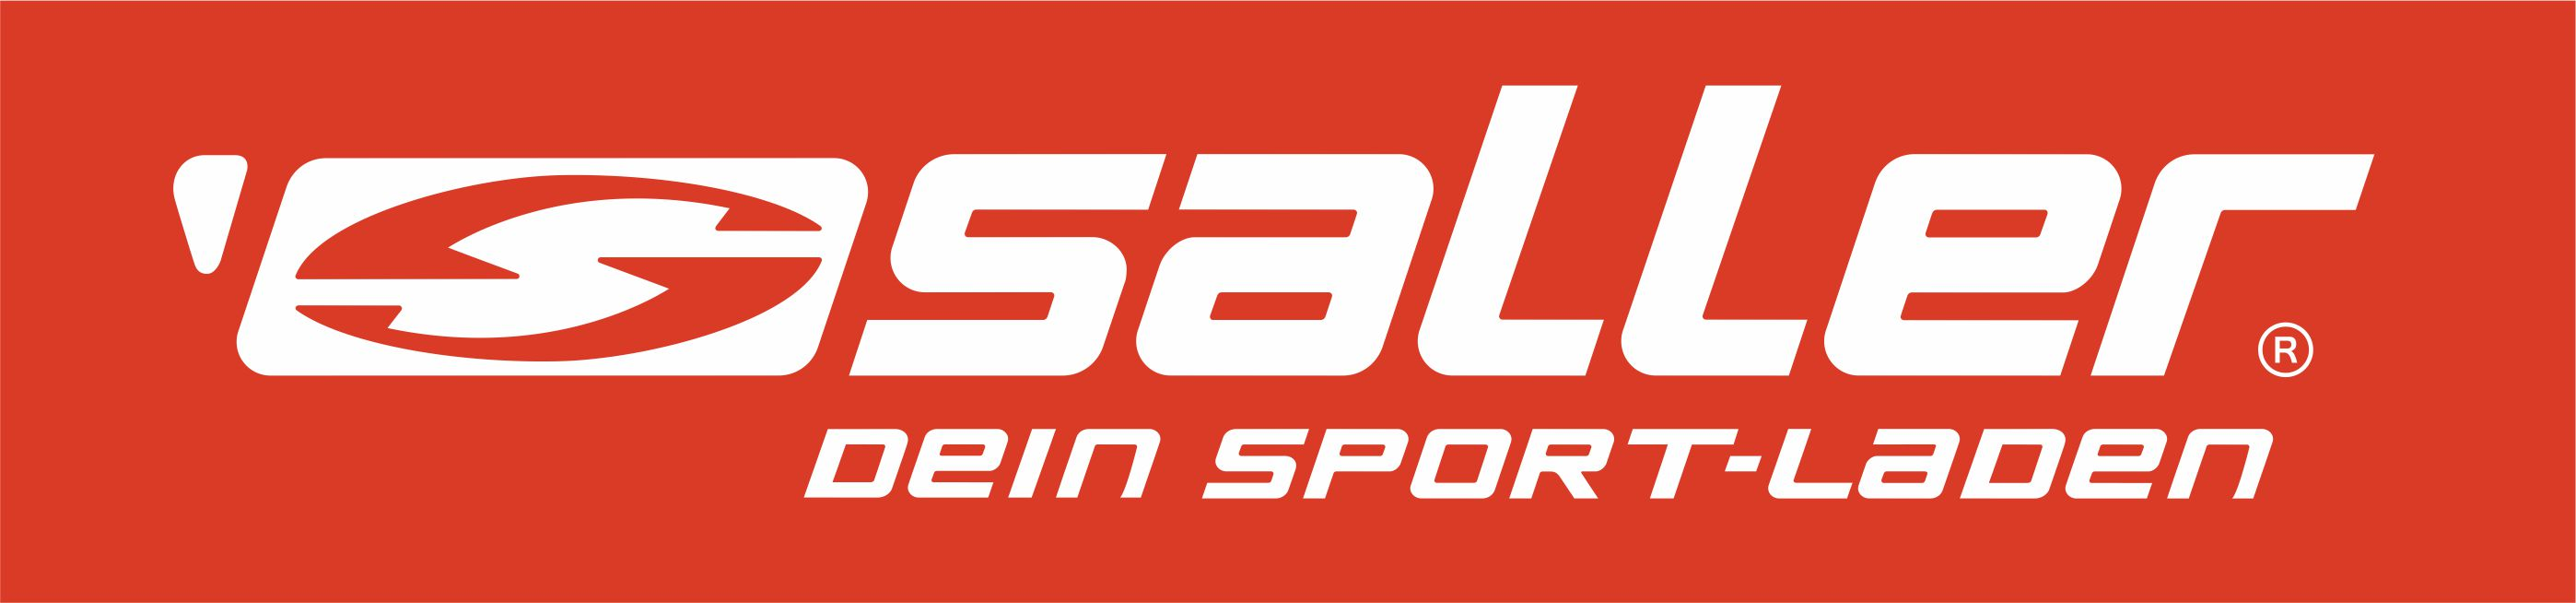 Saller_Sport-Laden_orange